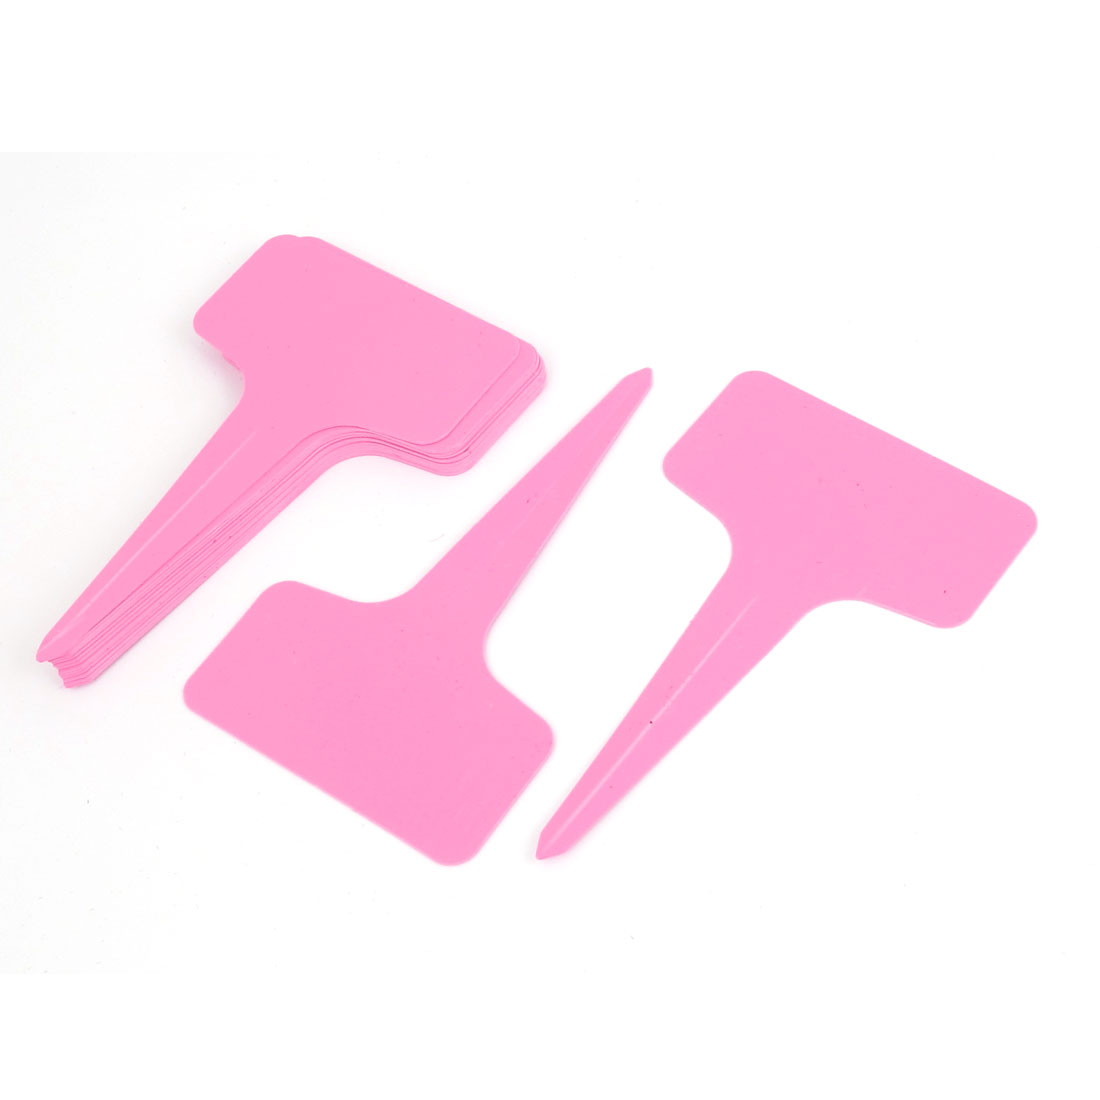 15pcs Plastic Plant T-type Tags Markers Seedling Nursery Gardening Stick Pink